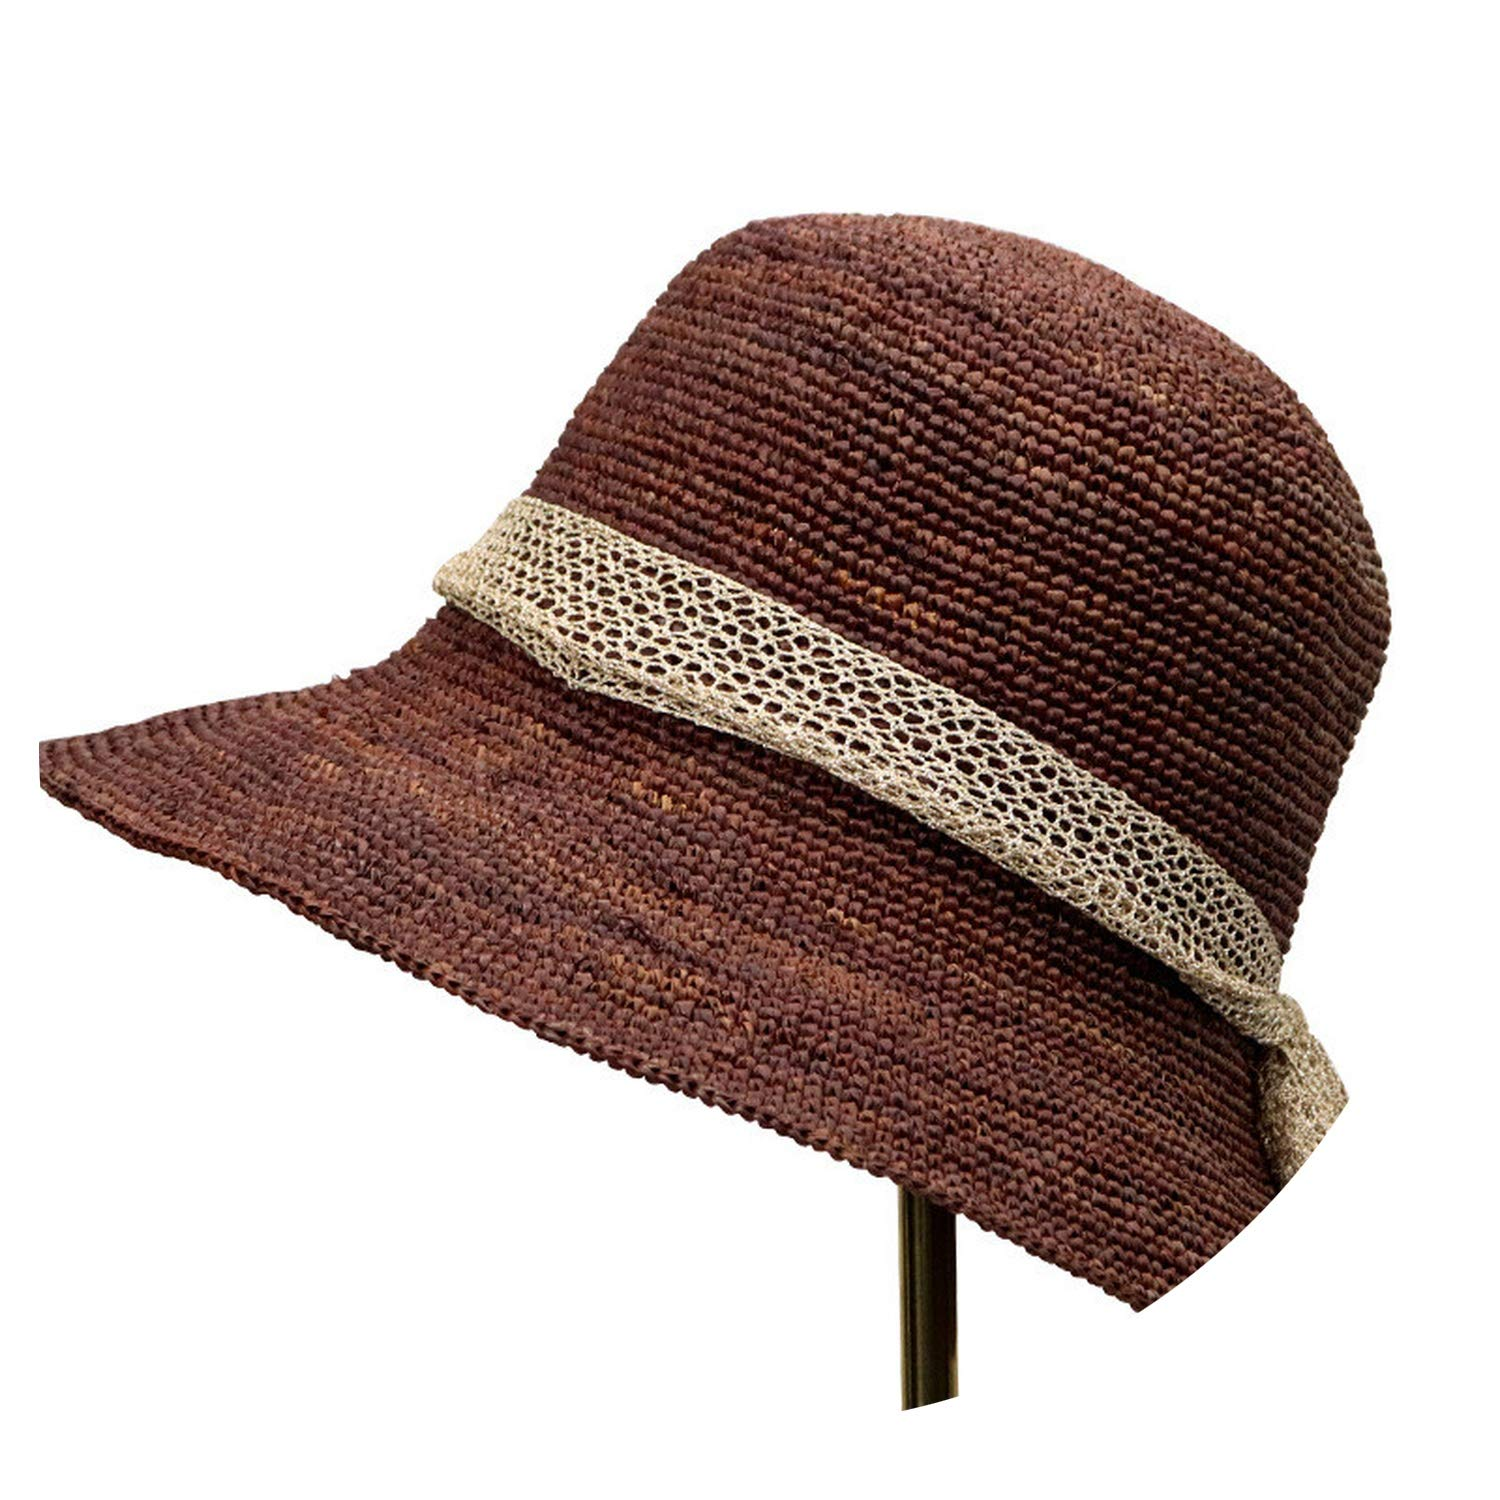 2019 Hua Hua high-end Boutique Hand Hook lafite Grass Bowknot Thin Woven Straw hat New Costume,1,M by mybeautifulstore 1